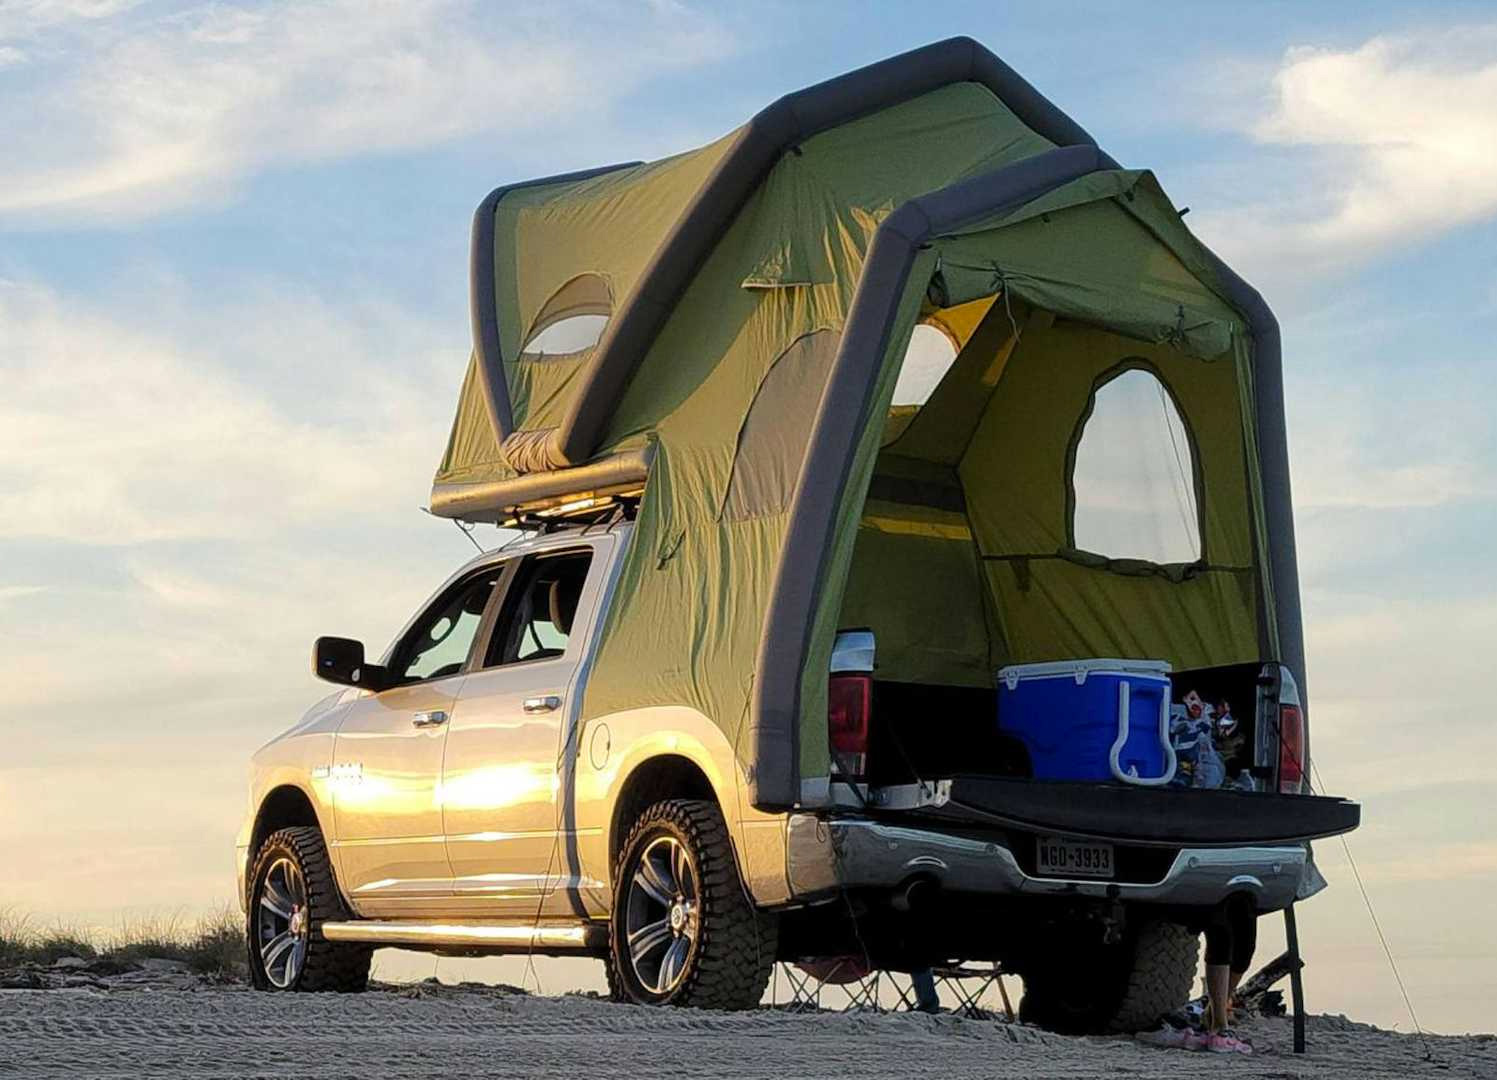 This Inflatable Rooftop Tent Turns Your Truck into a Camper at werd.com